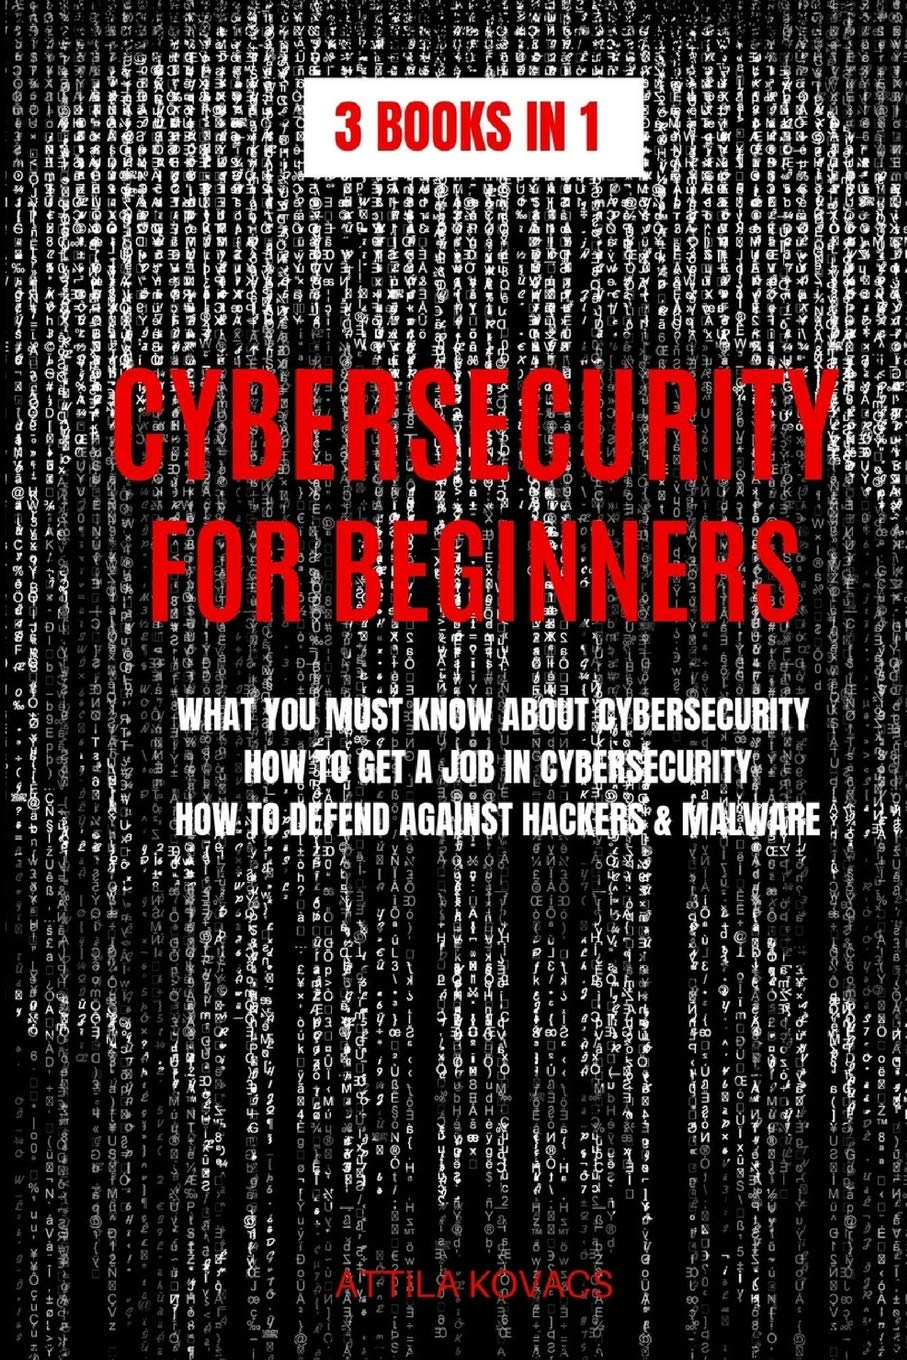 Cybersecurity for Beginners: What You Must Know about Cybersecurity, How to Get a Job in Cybersecurity, How to Defend Against Hackers & Malware (3 Books in 1)